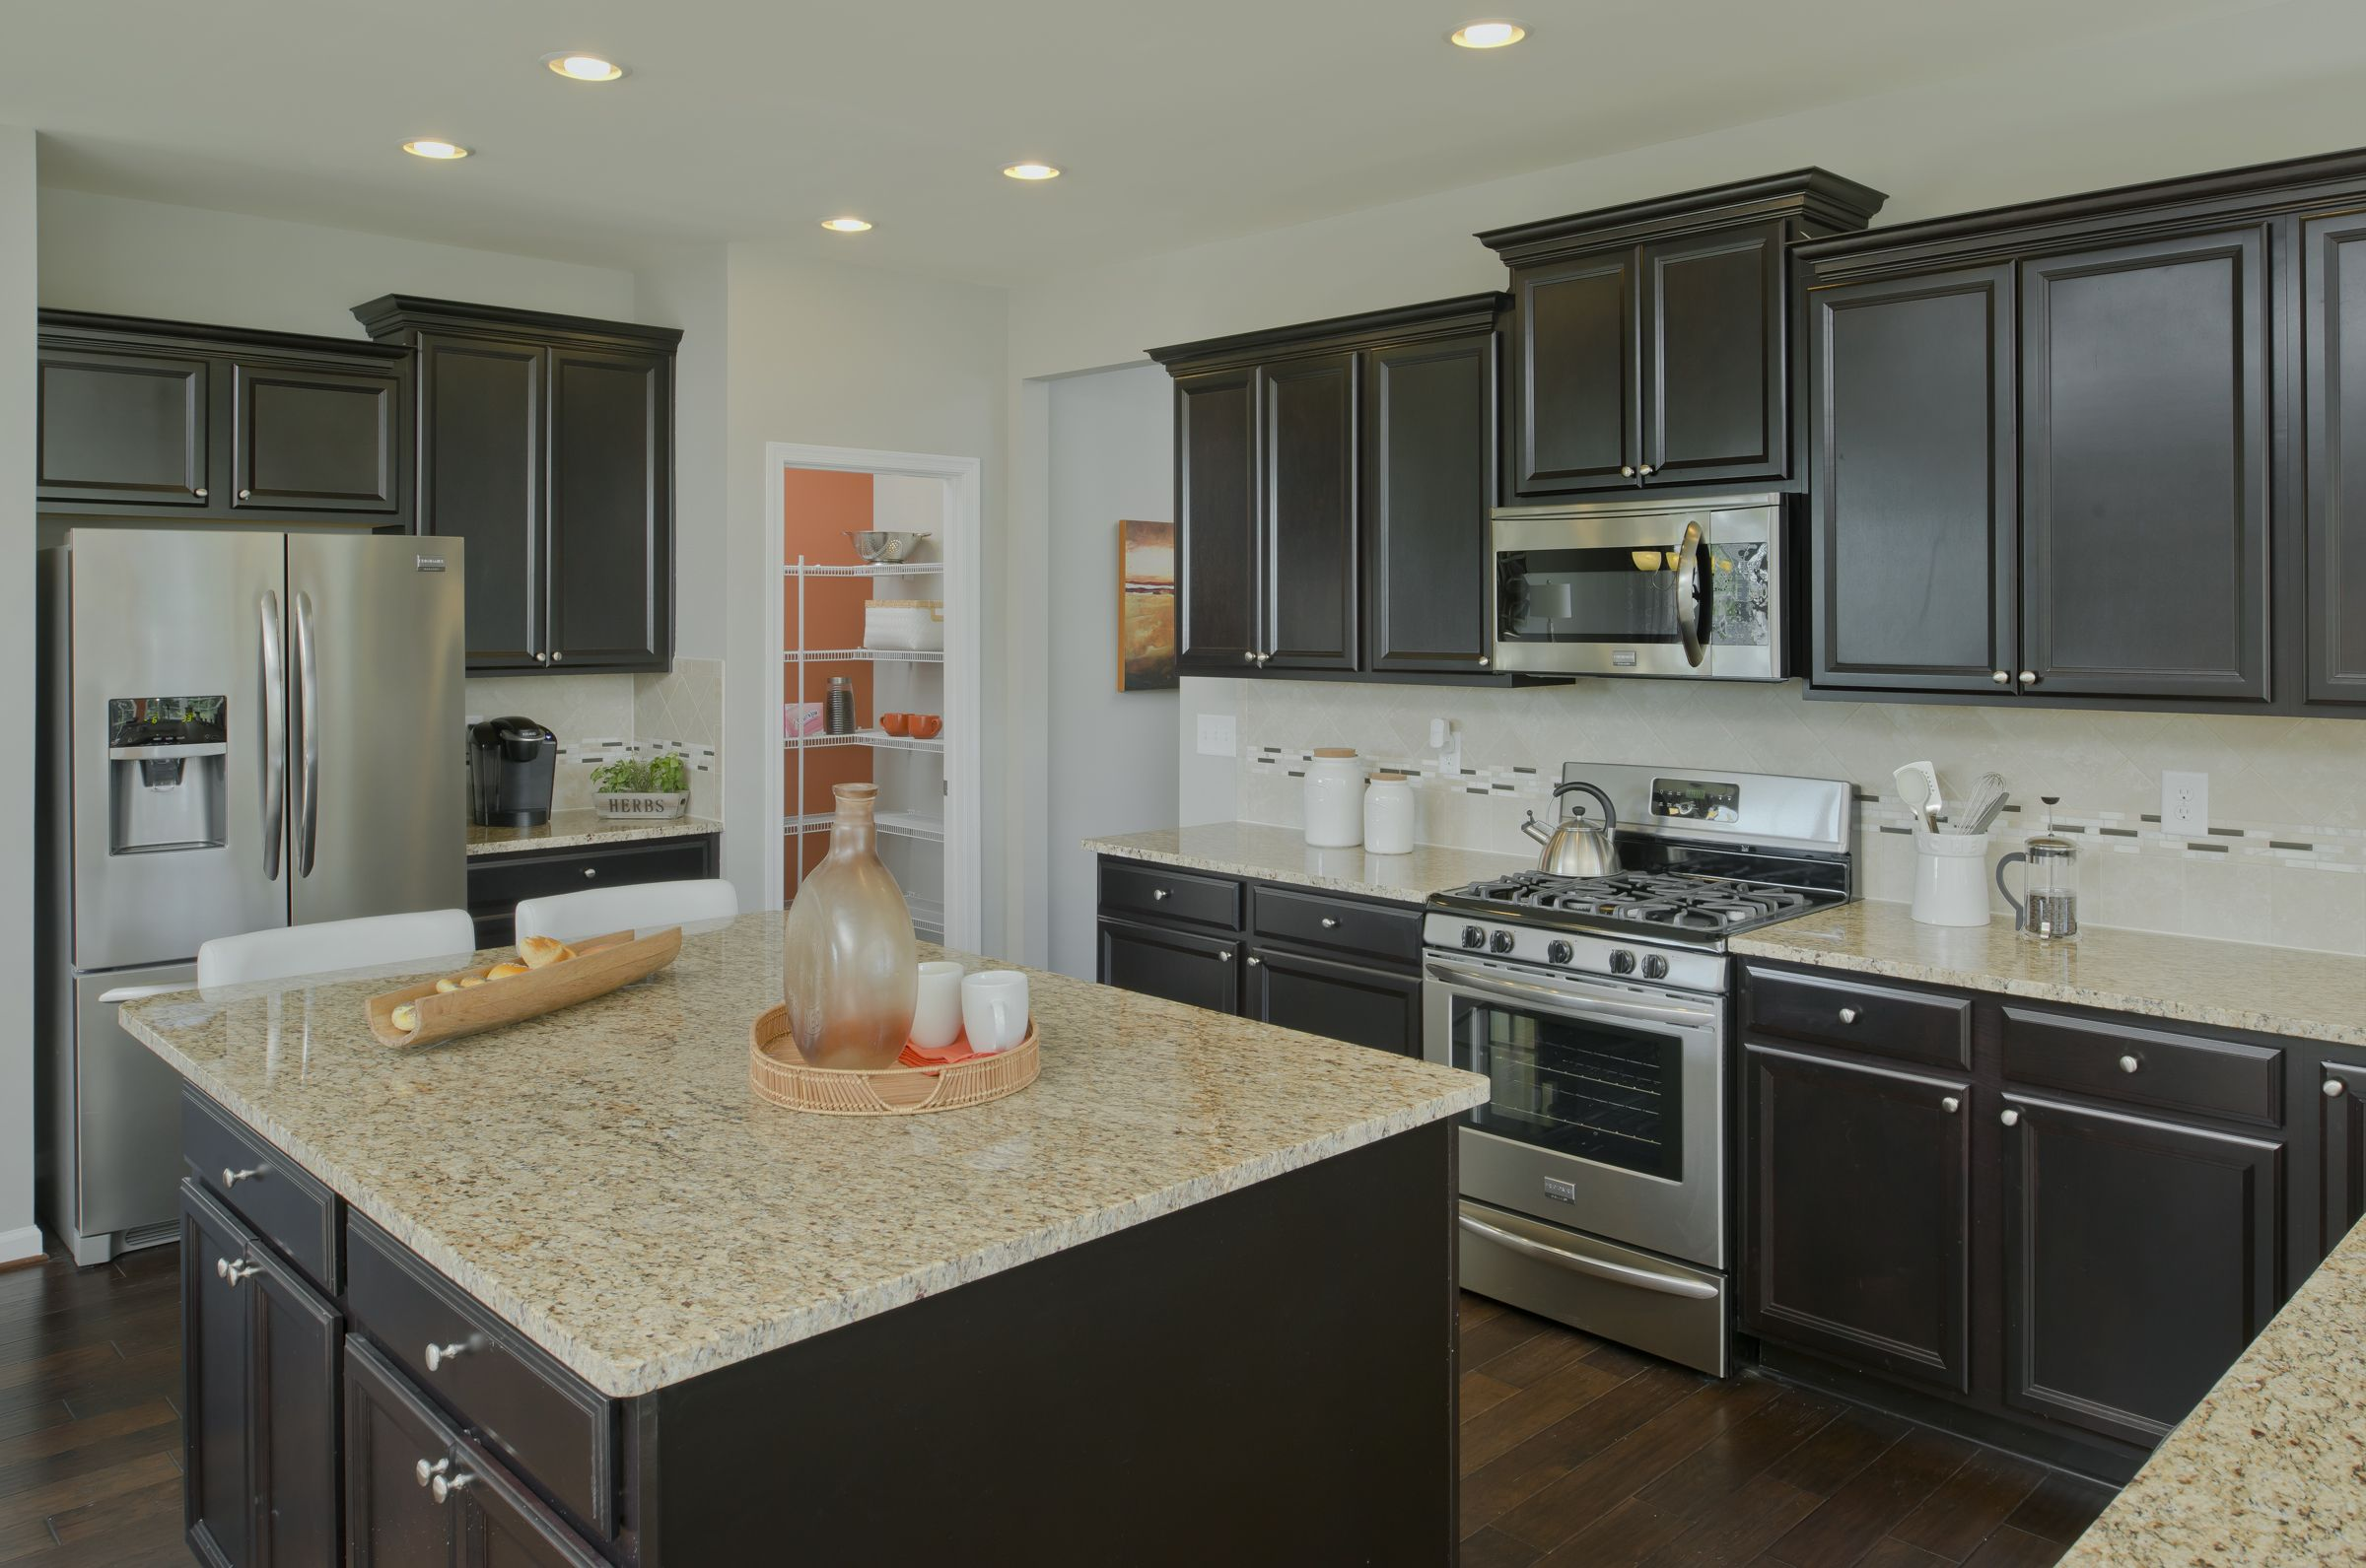 New Homes And Townhomes By Lennar In Md De And D C Metro Huge Kitchen New Homes Model Homes